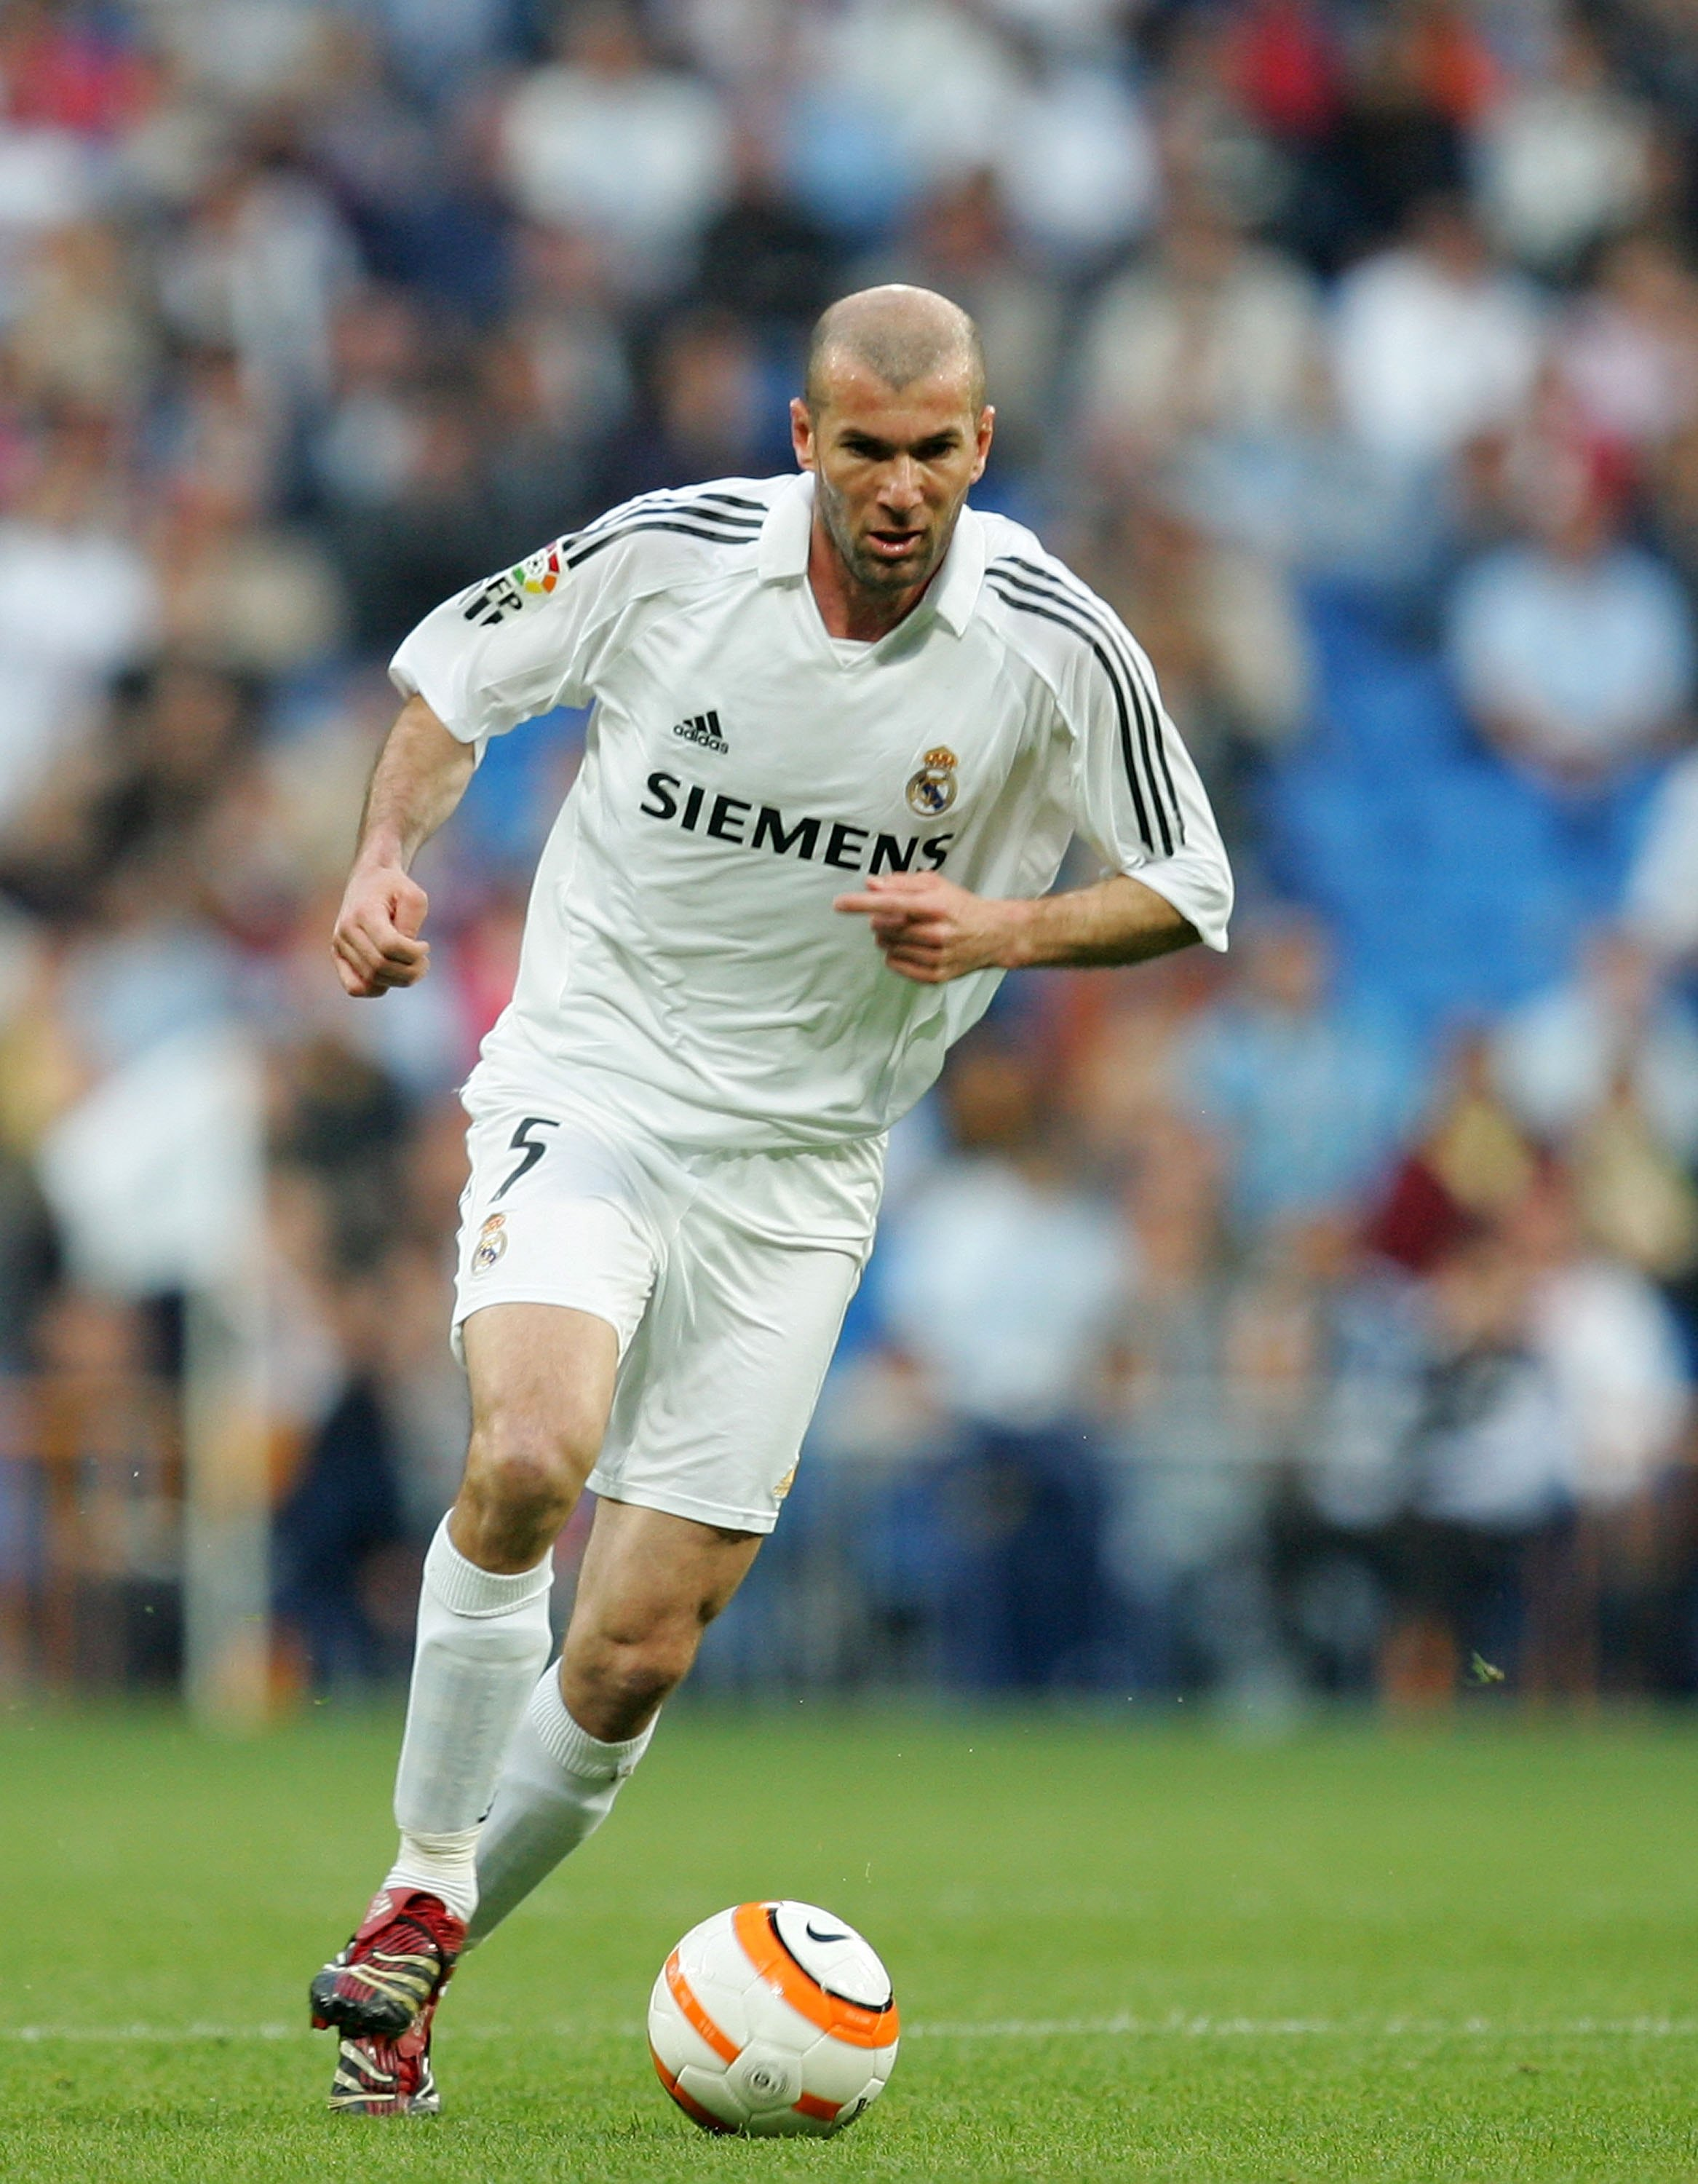 MADRID, SPAIN - APRIL 08:  Zinedine Zidane of Real Madrid dribblres with the ball during the Primera Liga match between Real Madrid and Real Sociedad at the Santiago Bernabeu stadium on April 8, 2006 in Madrid, Spain.  (Photo by Denis Doyle/Getty Images)